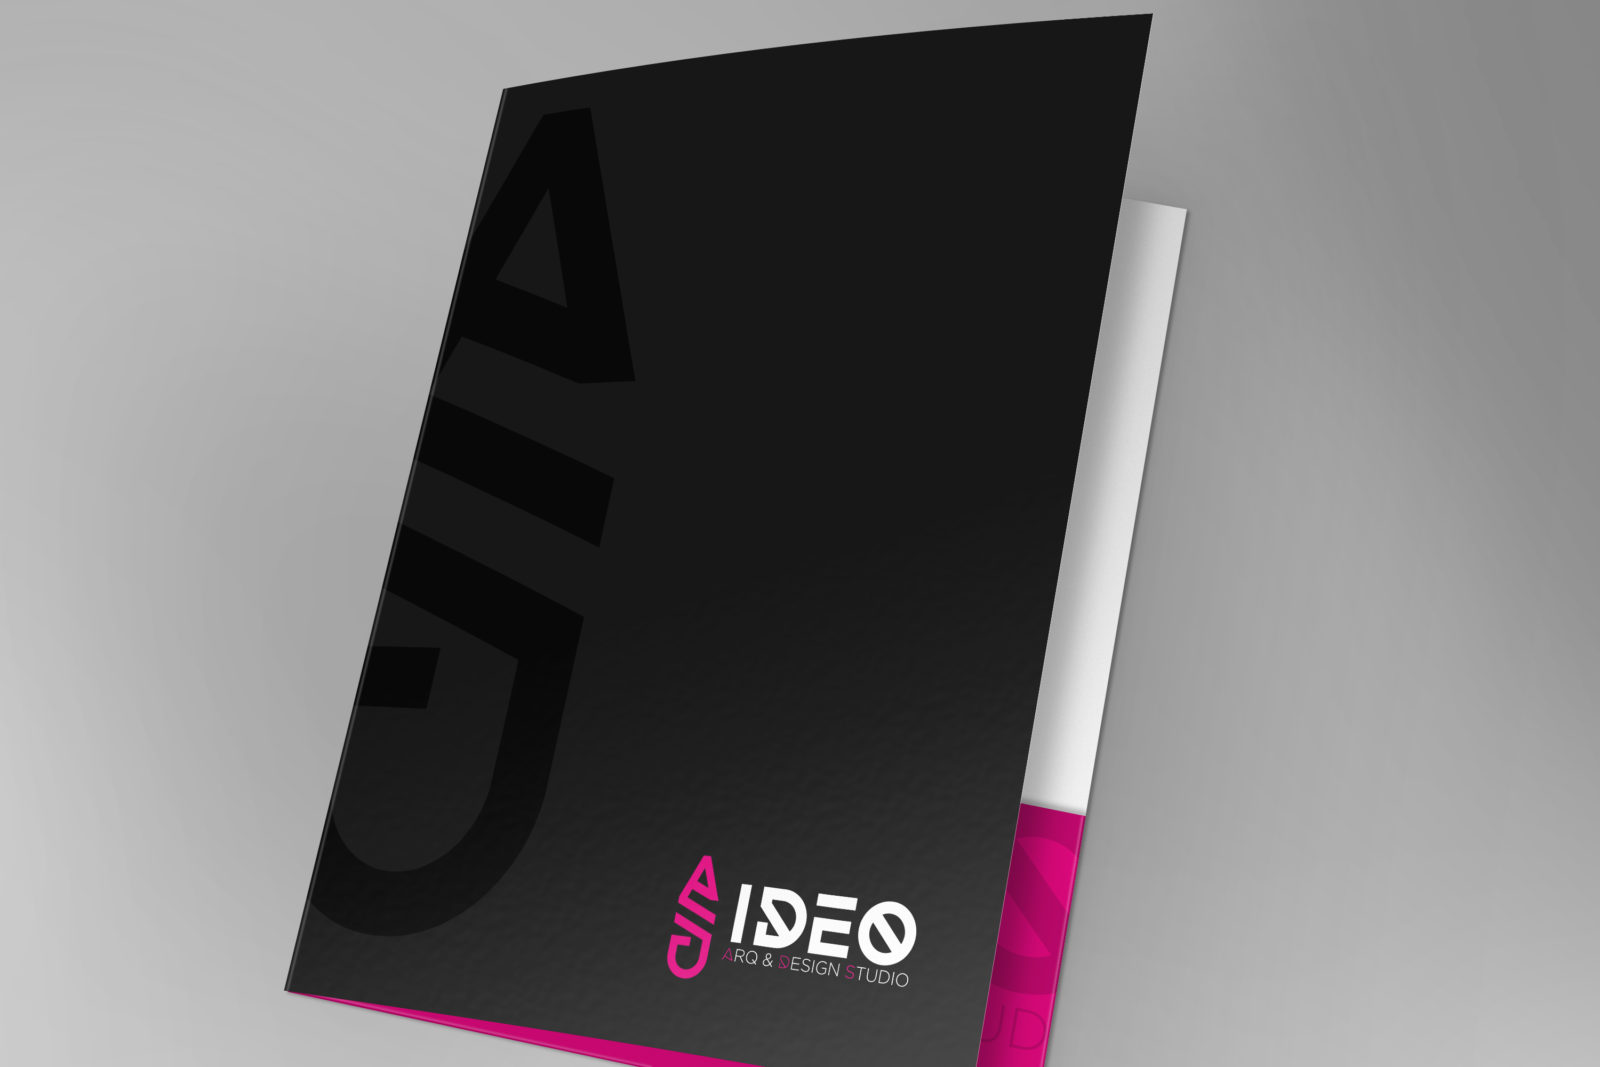 IDEO Arq & Design Studio